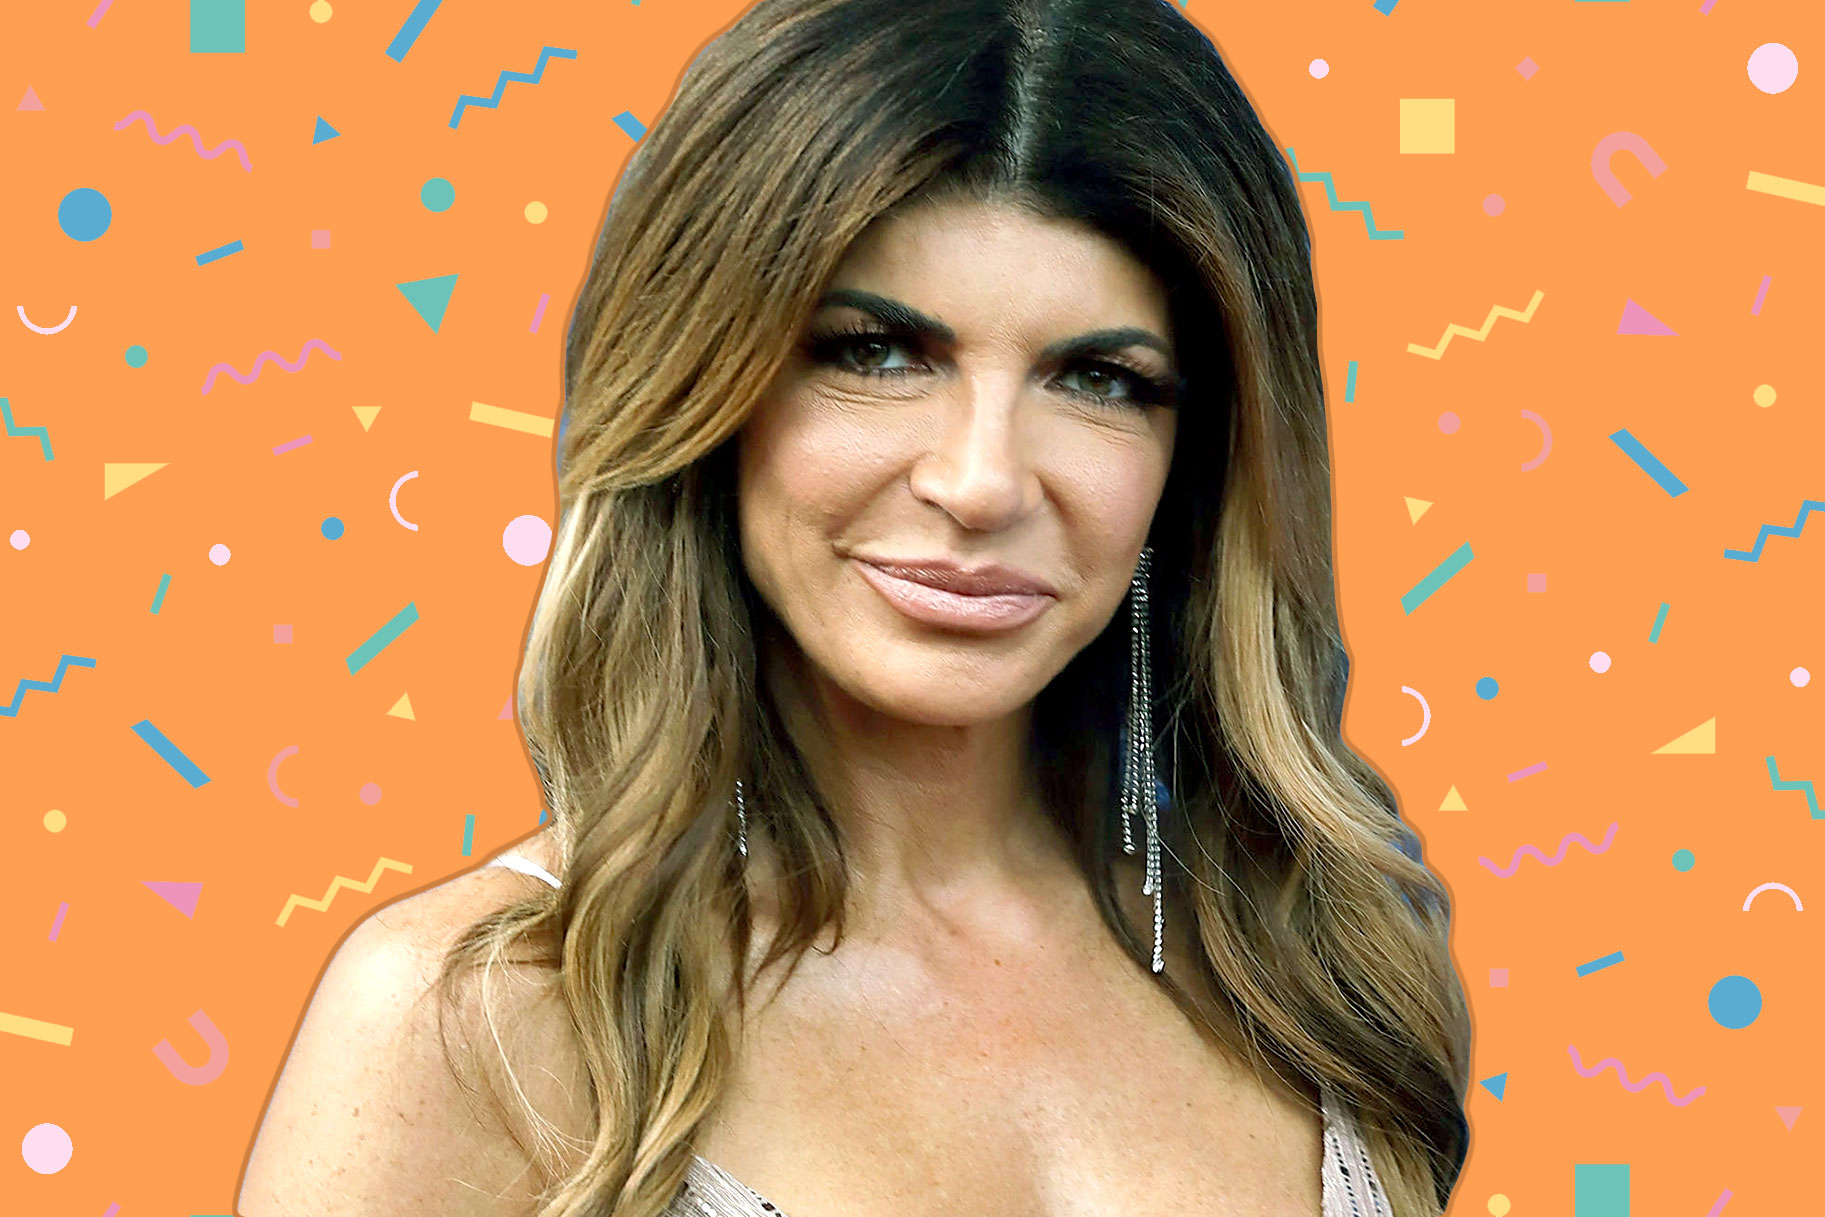 Teresa Giudice Celebrates Her Birthday in a Lace Bodysuit